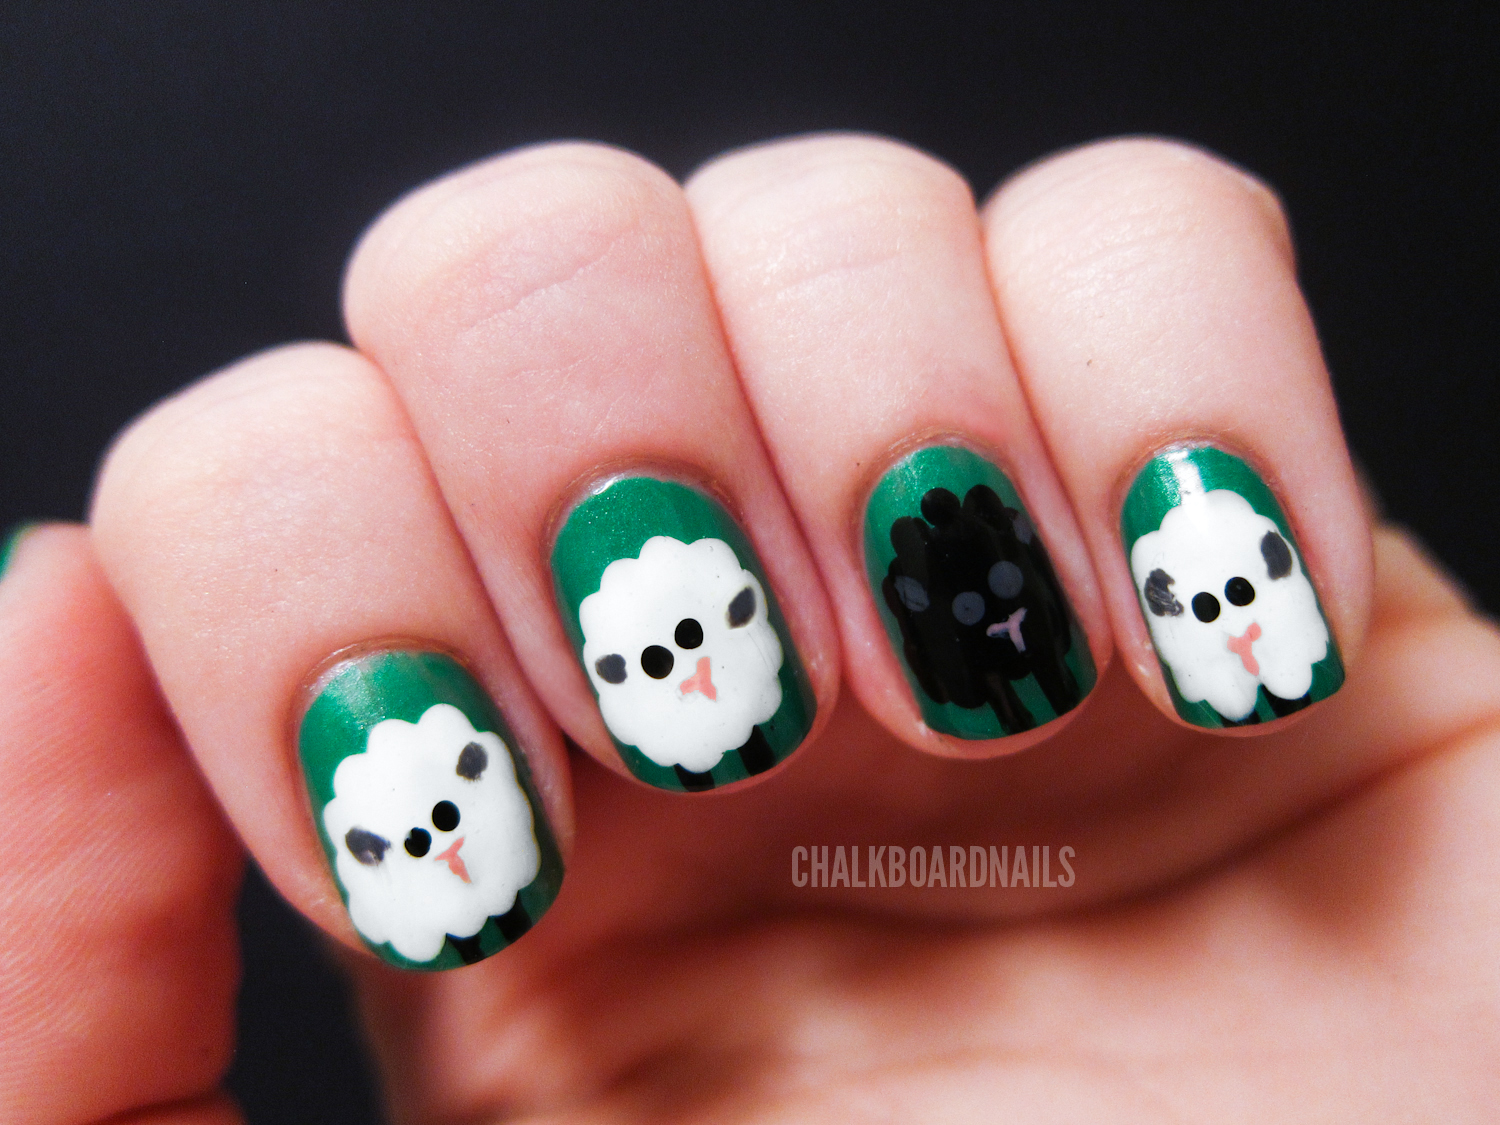 Sheep Nail Art (+ Tutorial) | Chalkboard Nails | Nail Art Blog